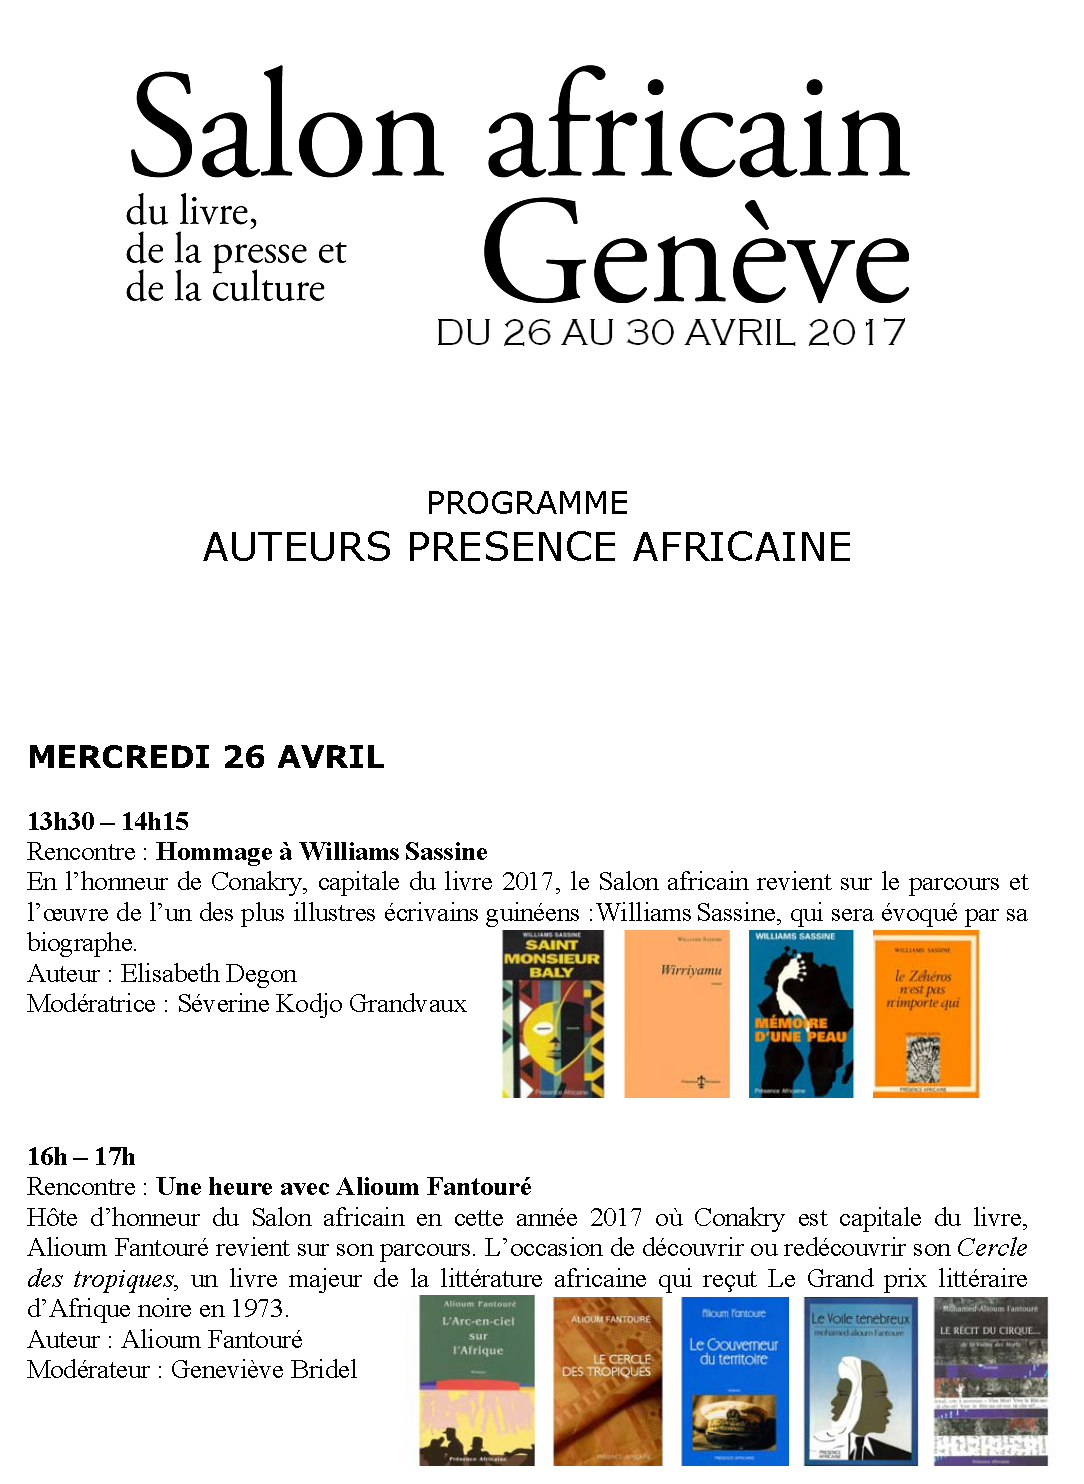 PROGRAMME salon geneve_Page_1_1.png